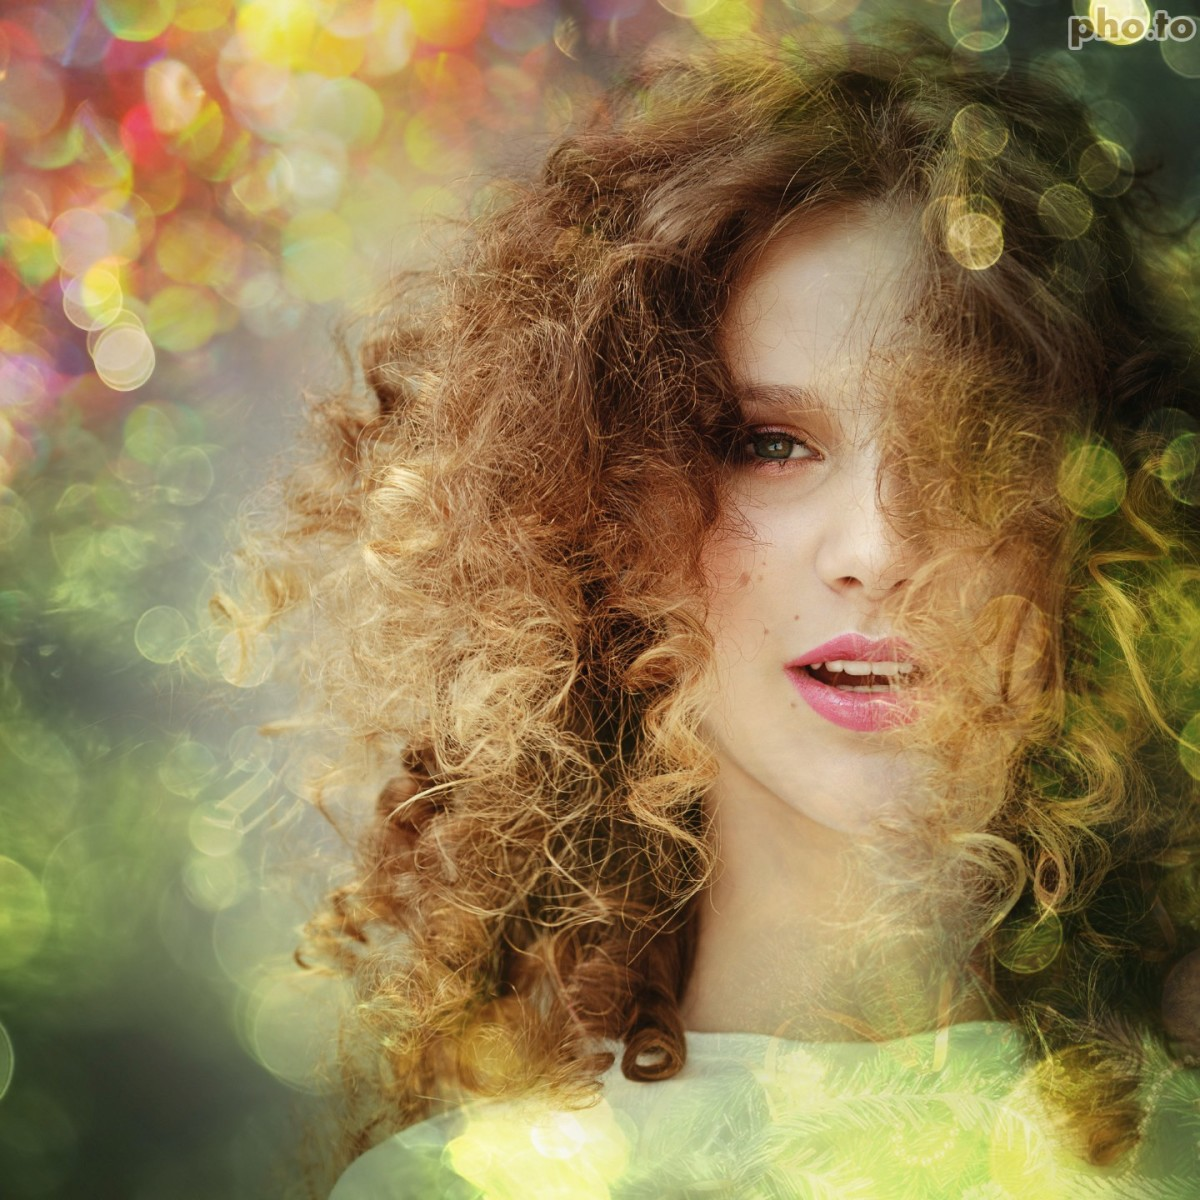 Blurred Christmas lights are added to a photo portrait of a curly girl